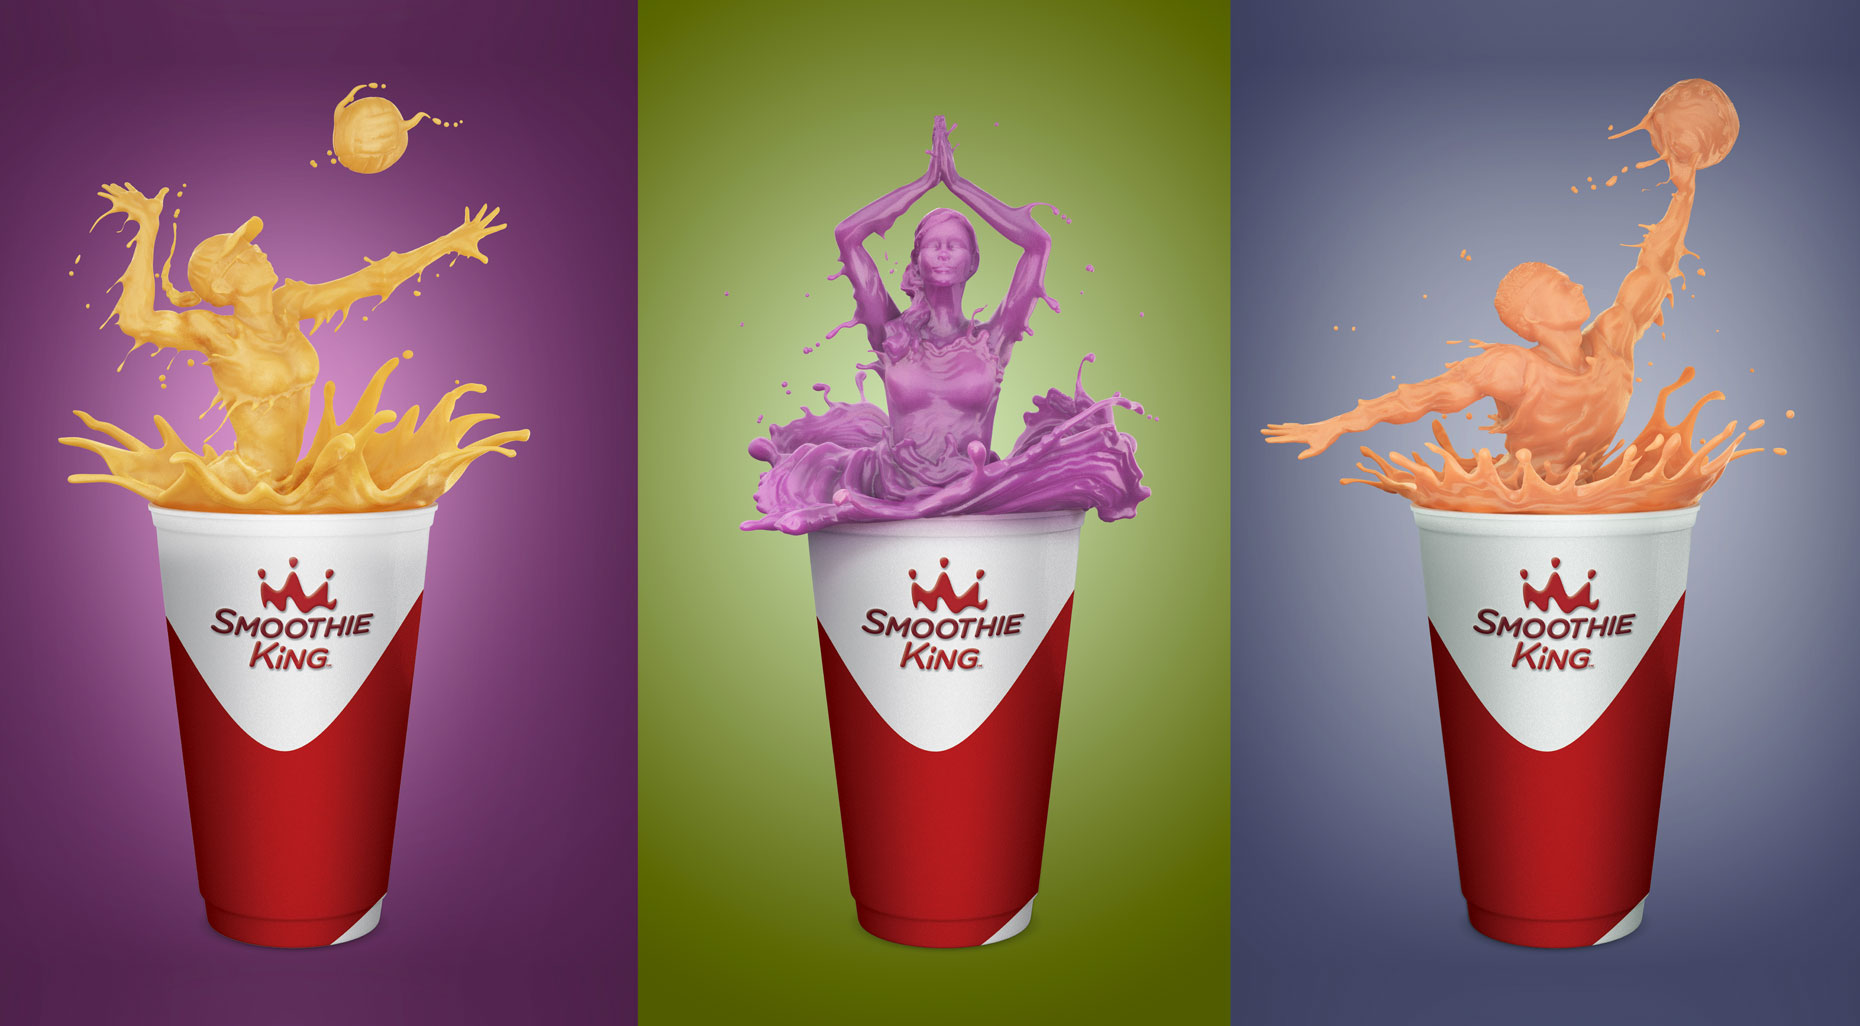 studioMiguel_Illustration_SmoothiekingLaunch